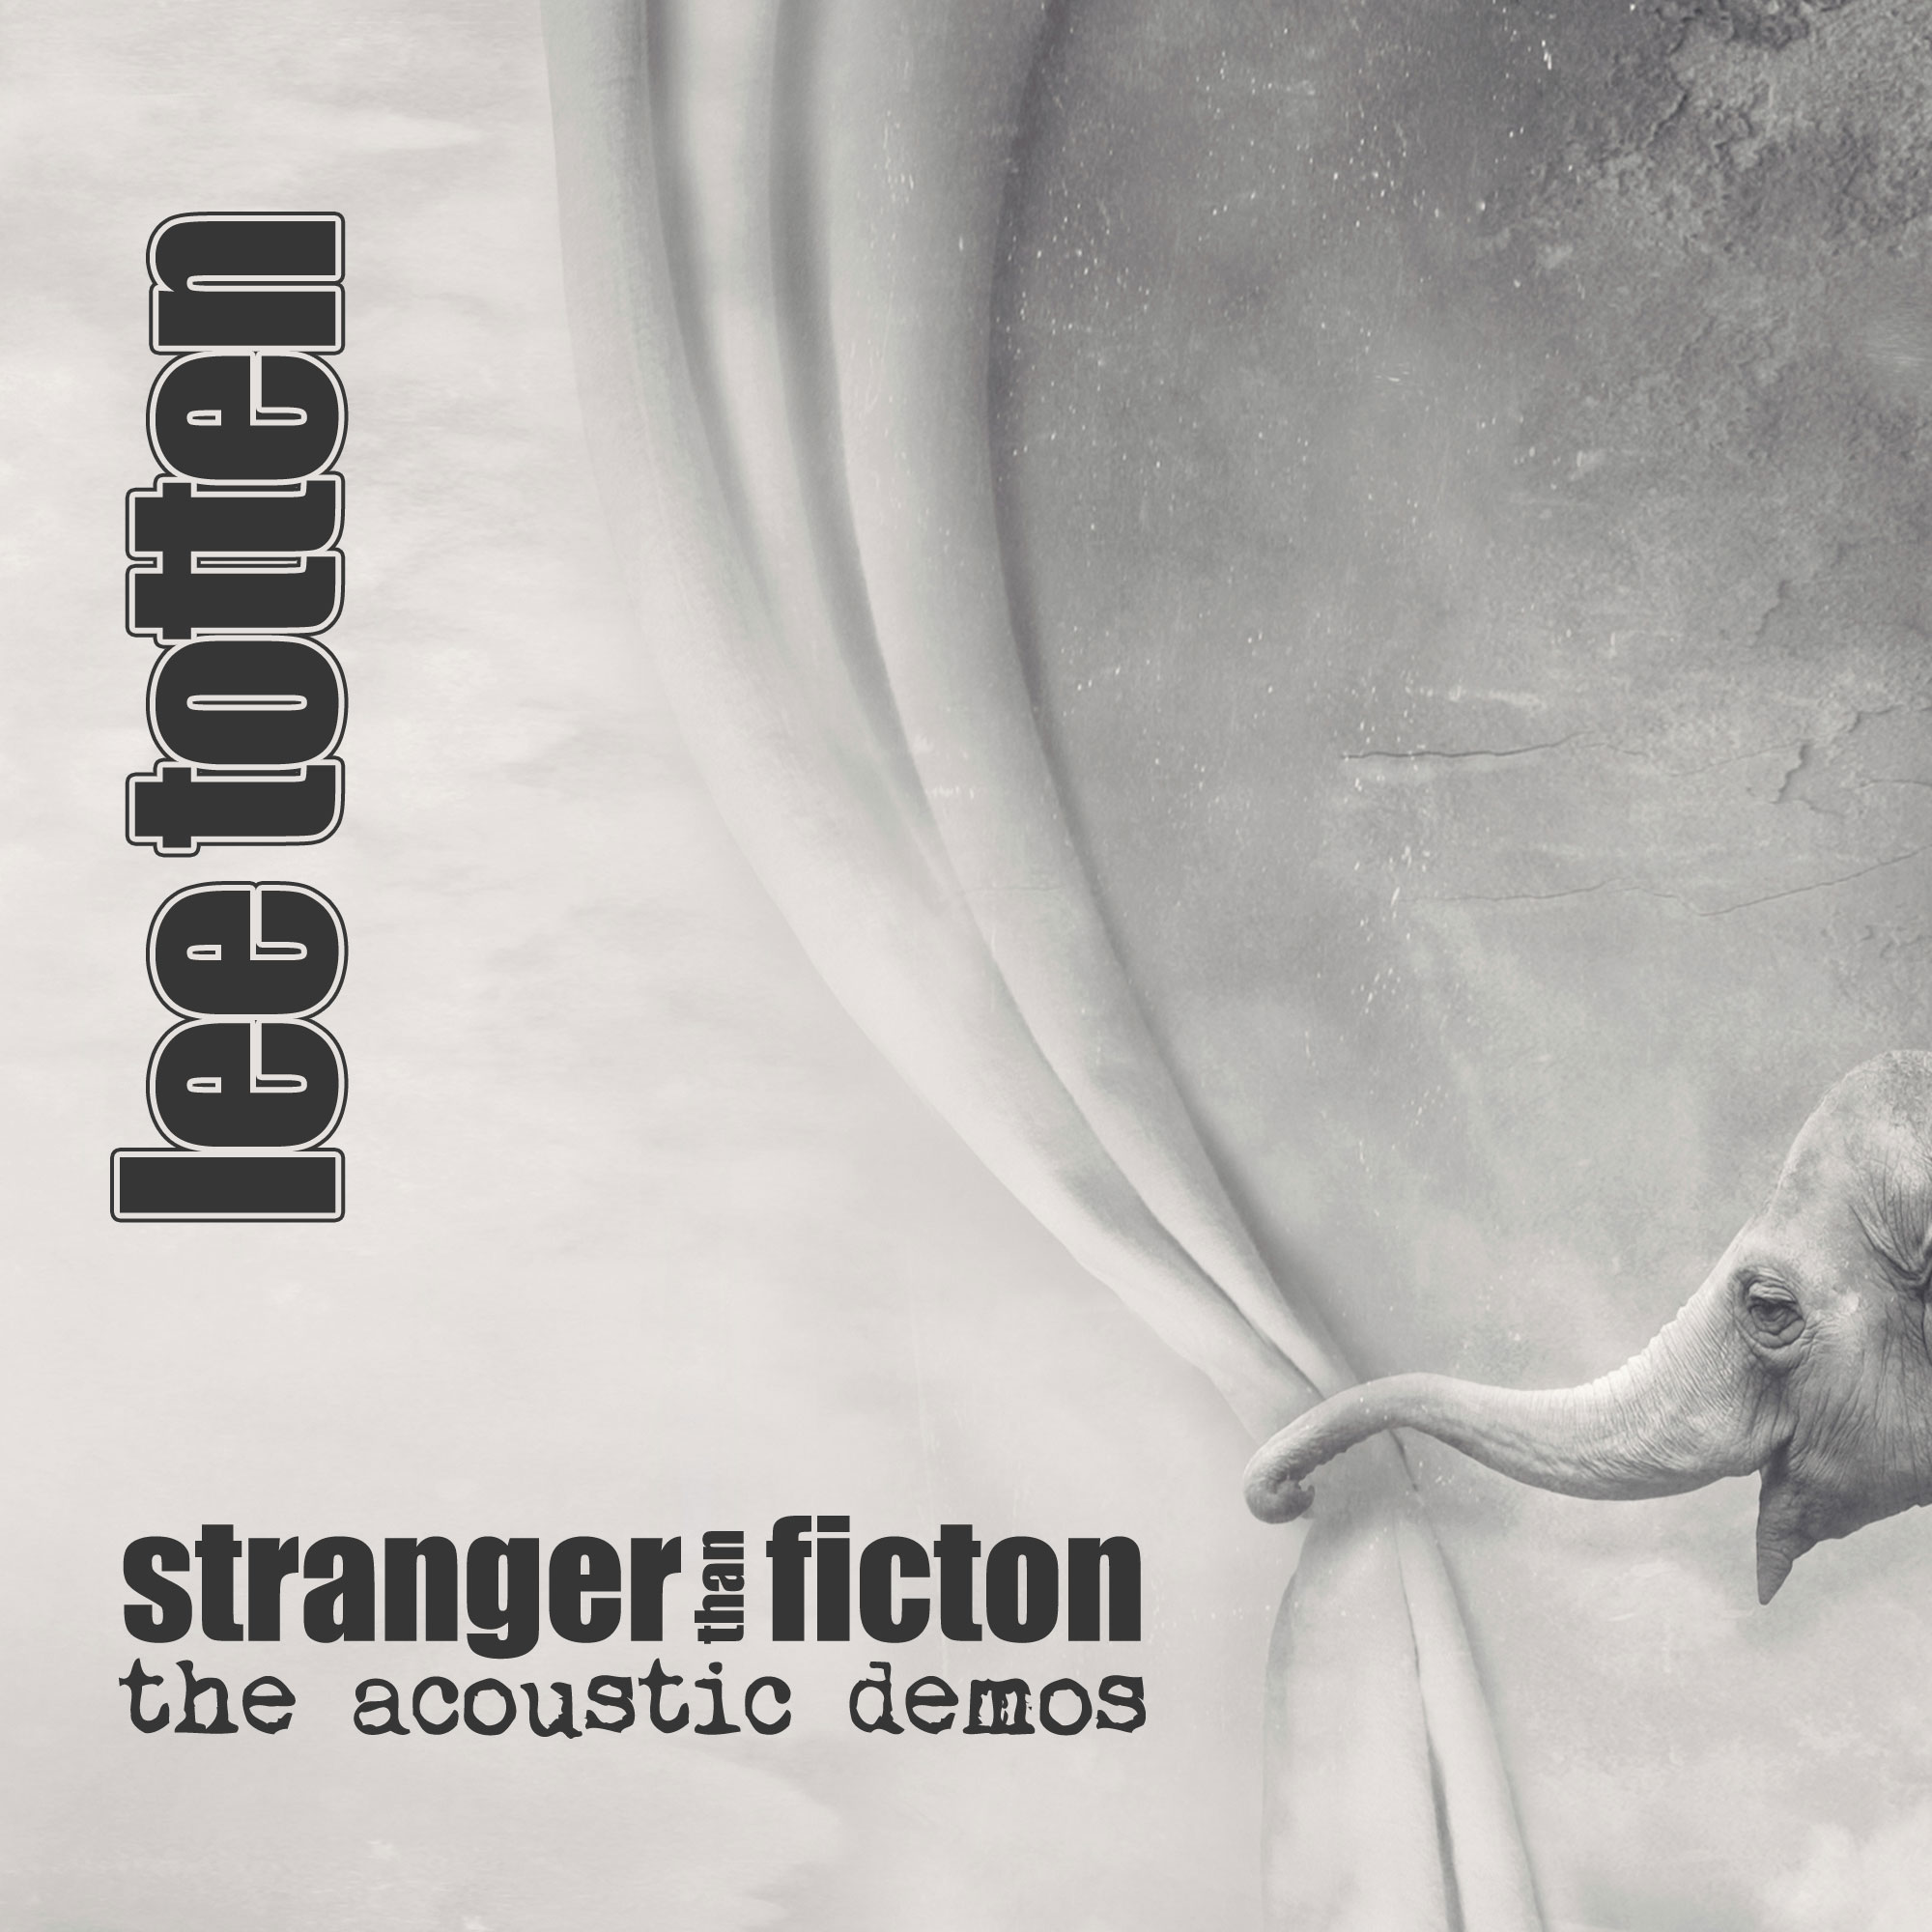 Stranger Than Fiction (the acoustic demos)